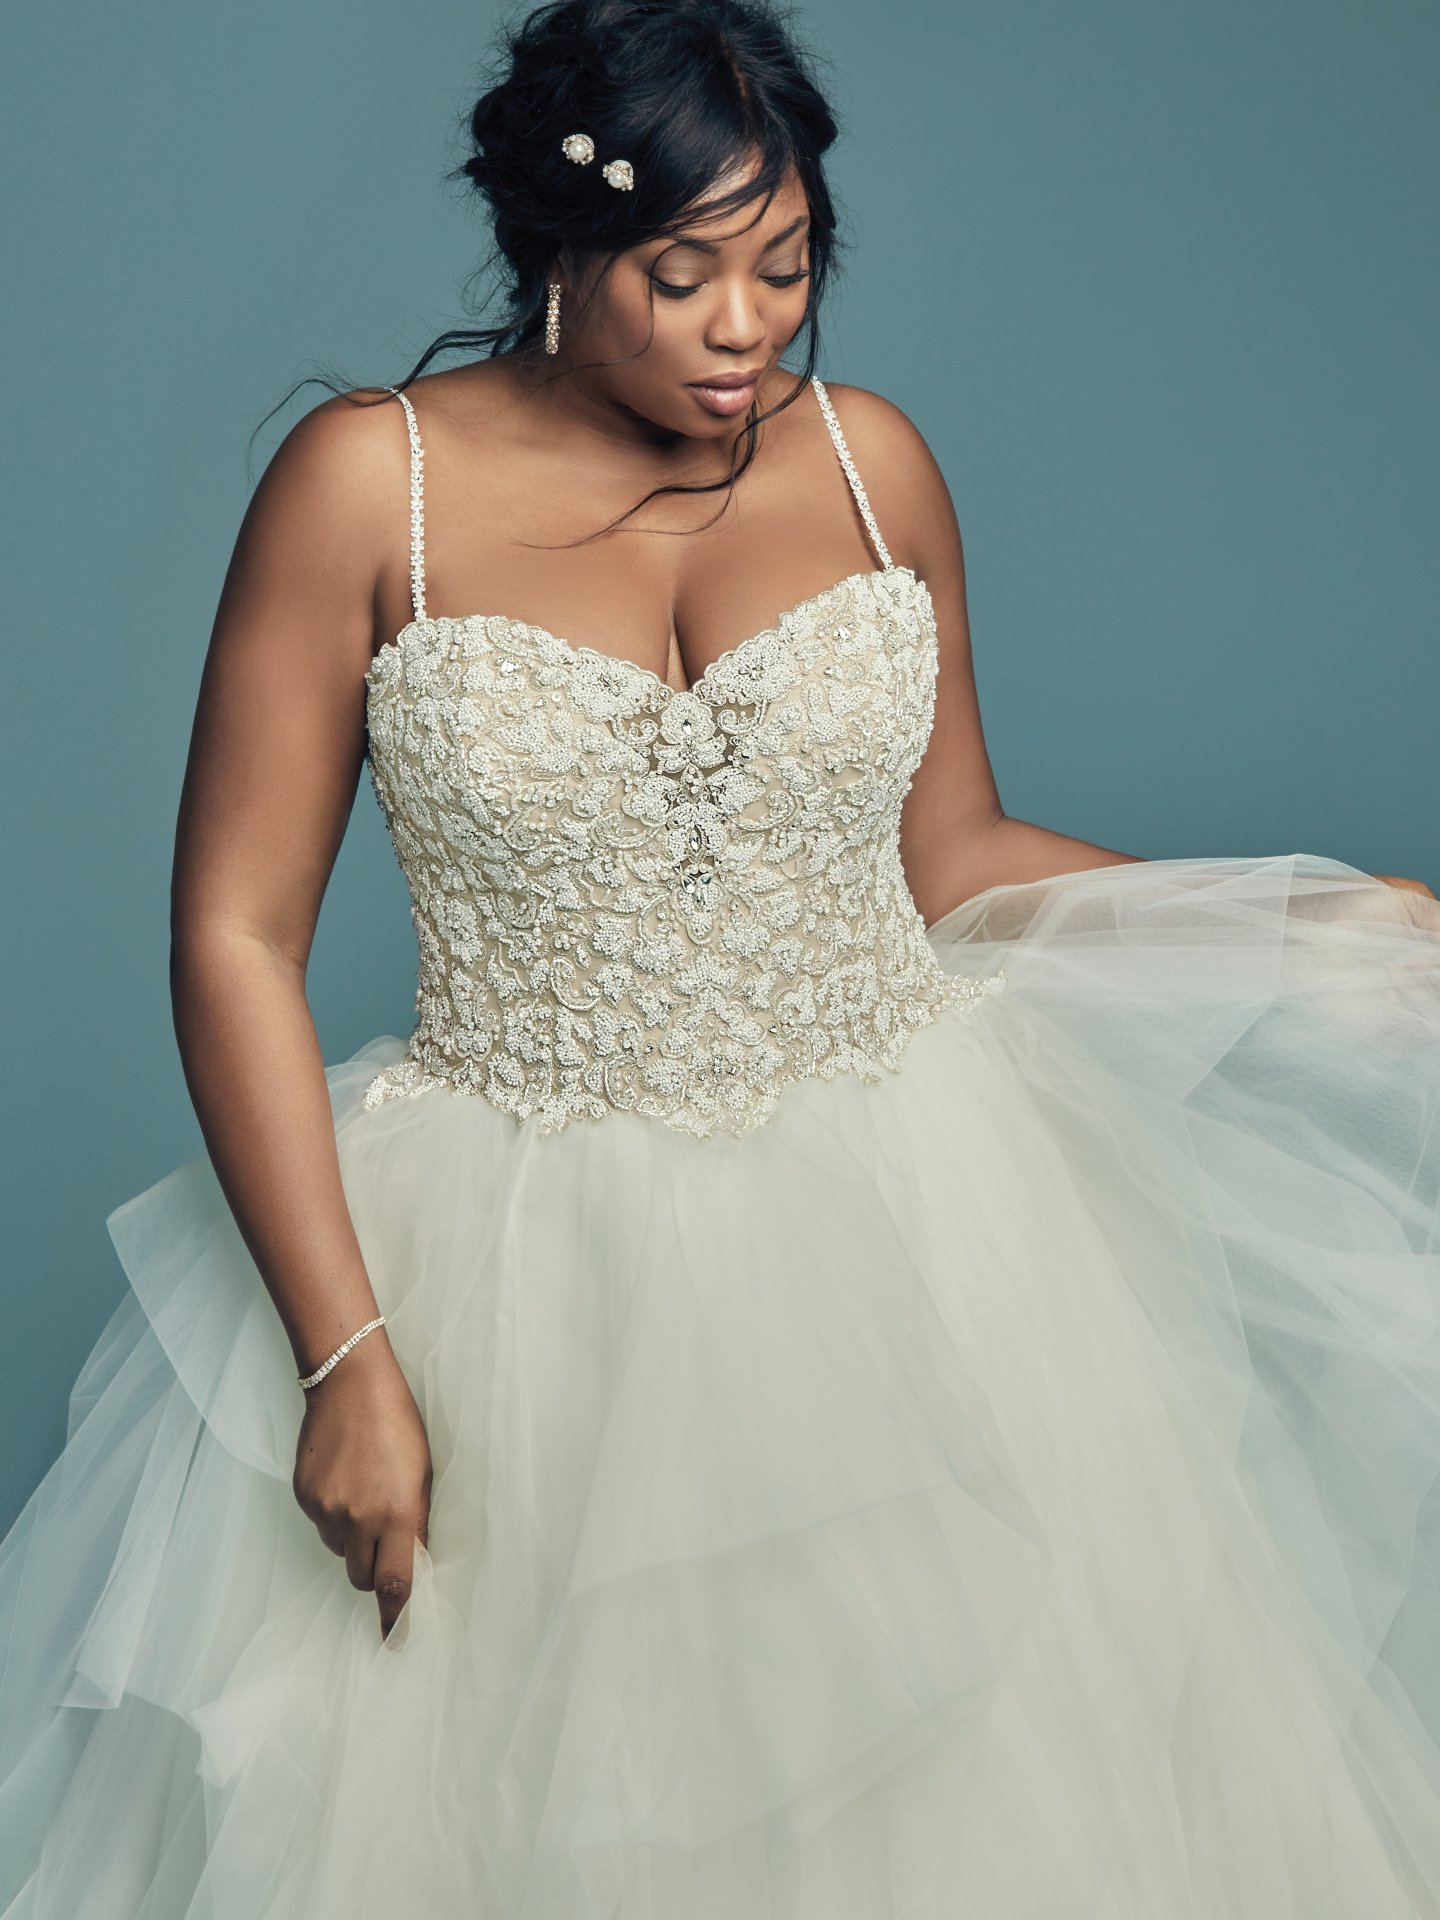 Apple-figured_Maggie-Sottero-Shauna-Lynette-8MD711AC-Plus-Alt2.jpg